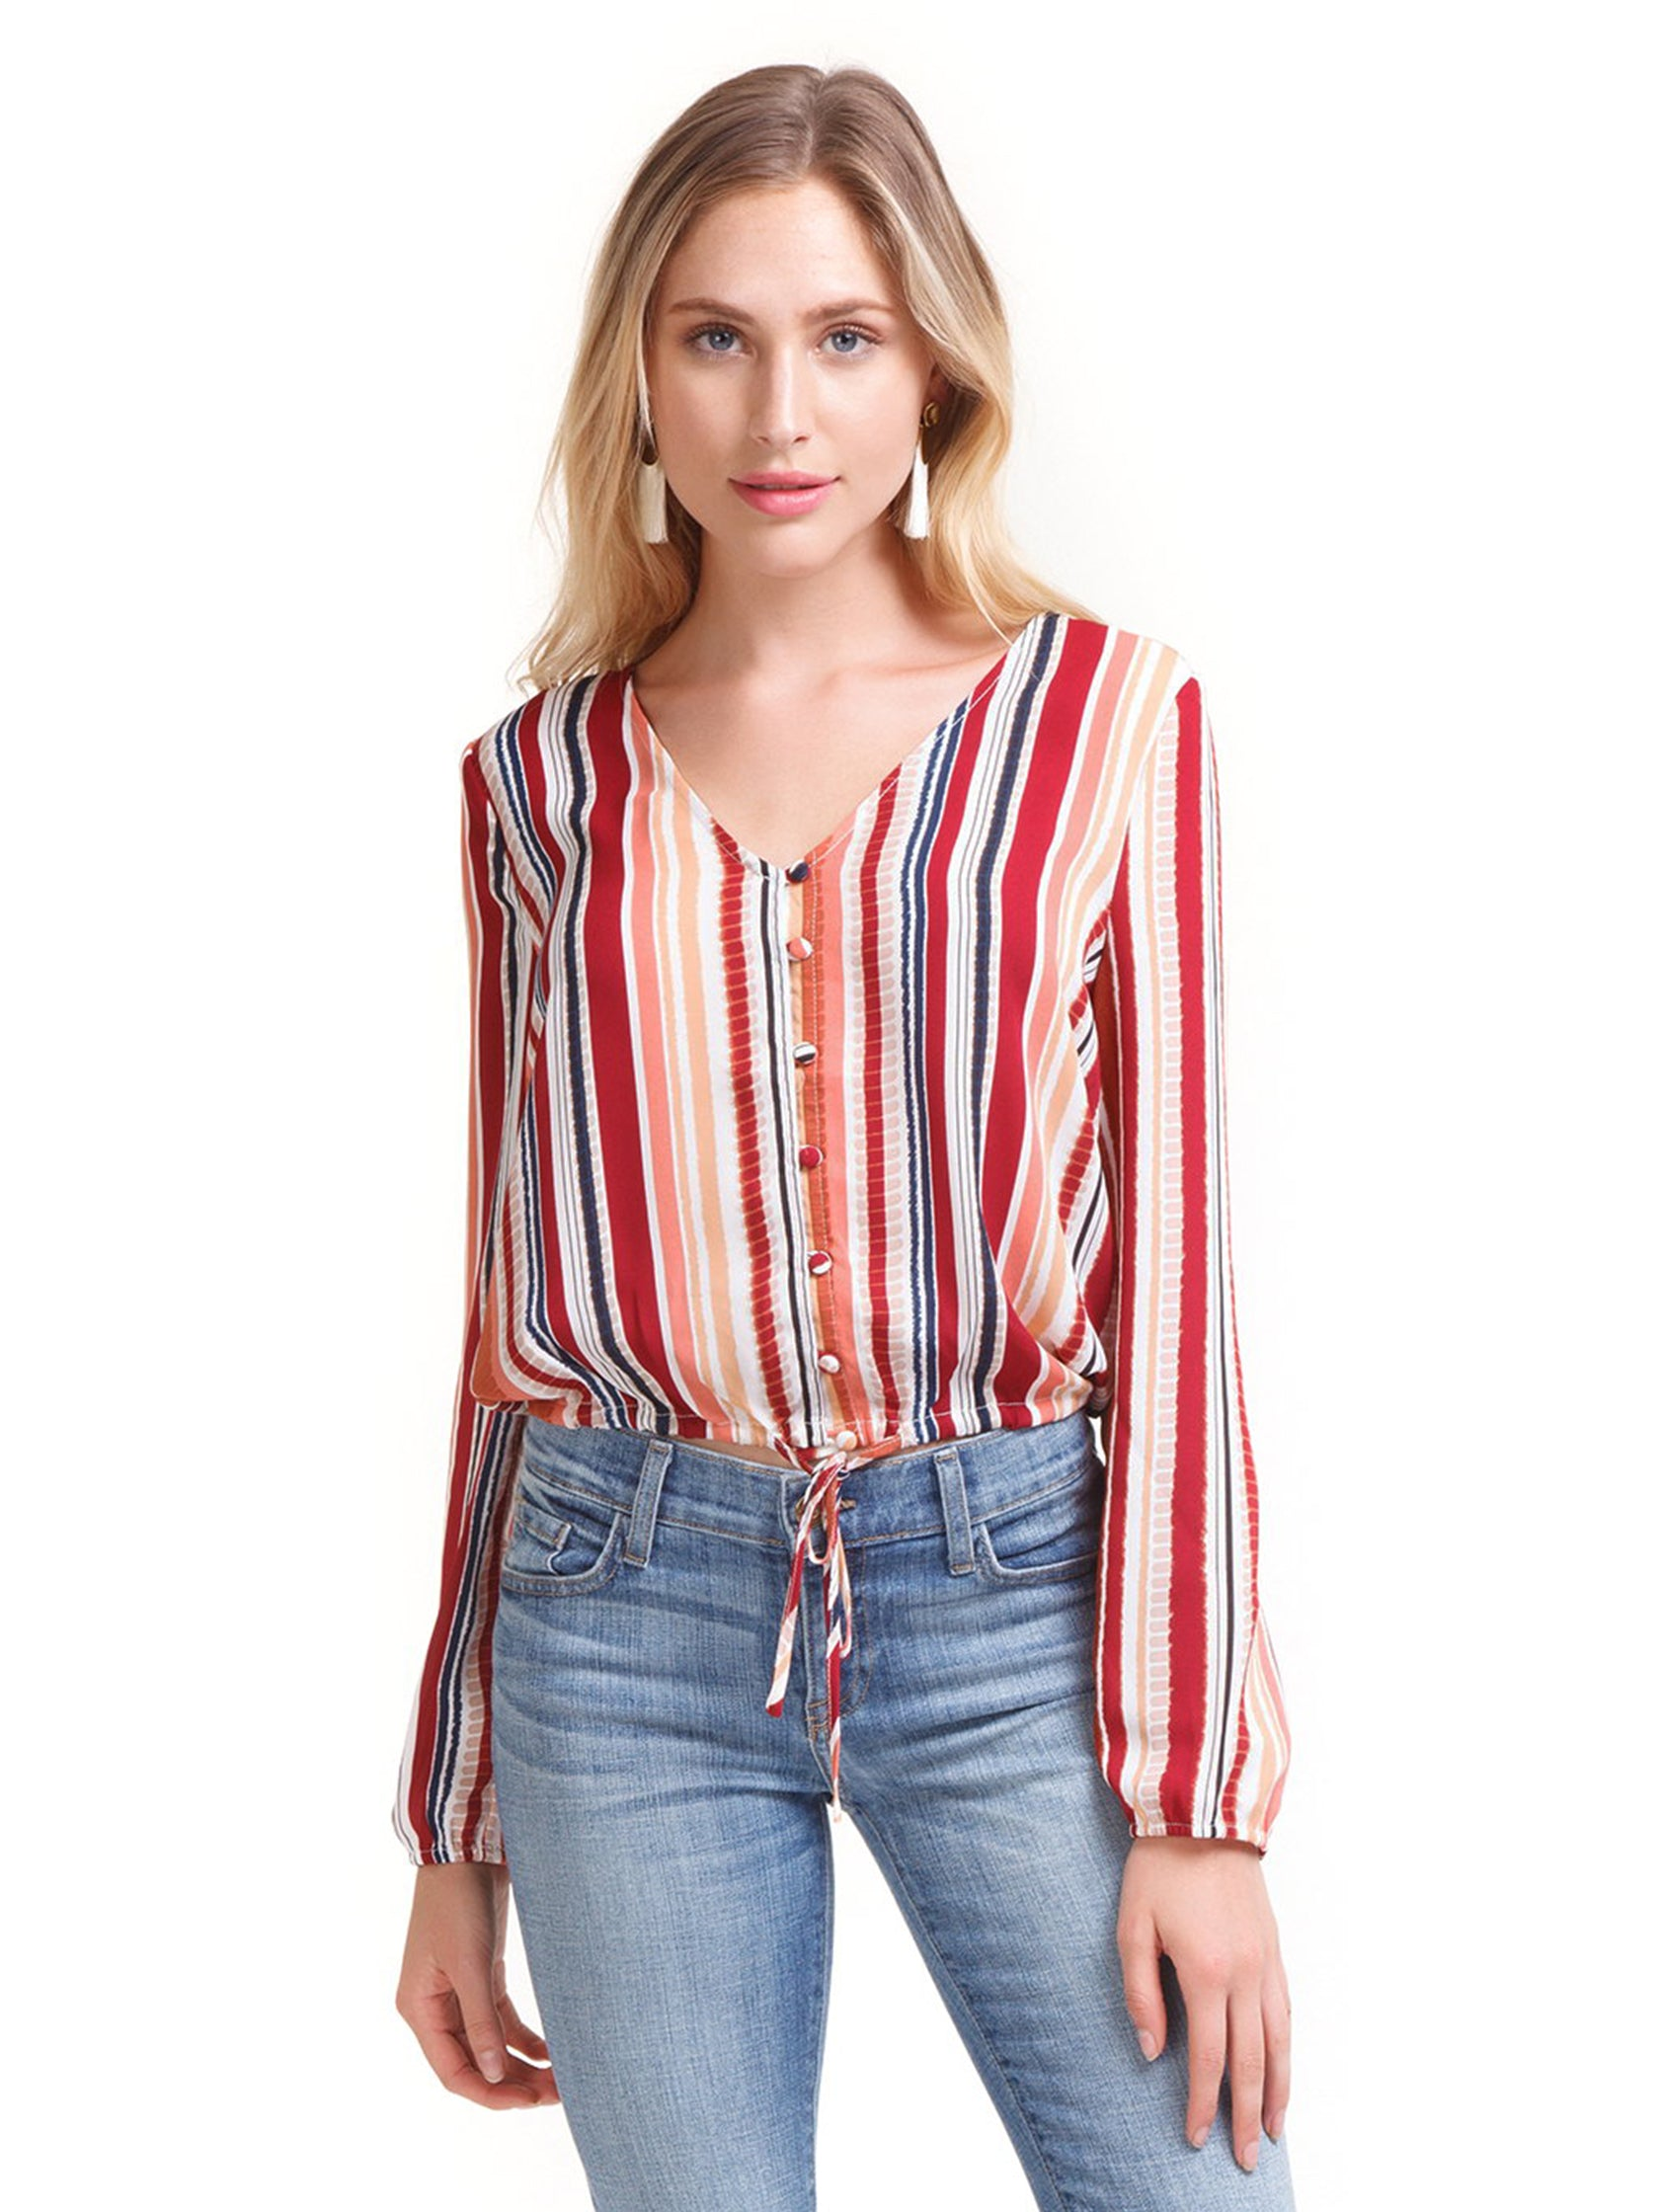 Girl outfit in a top rental from BB Dakota called Grigio Girl Stripe Top